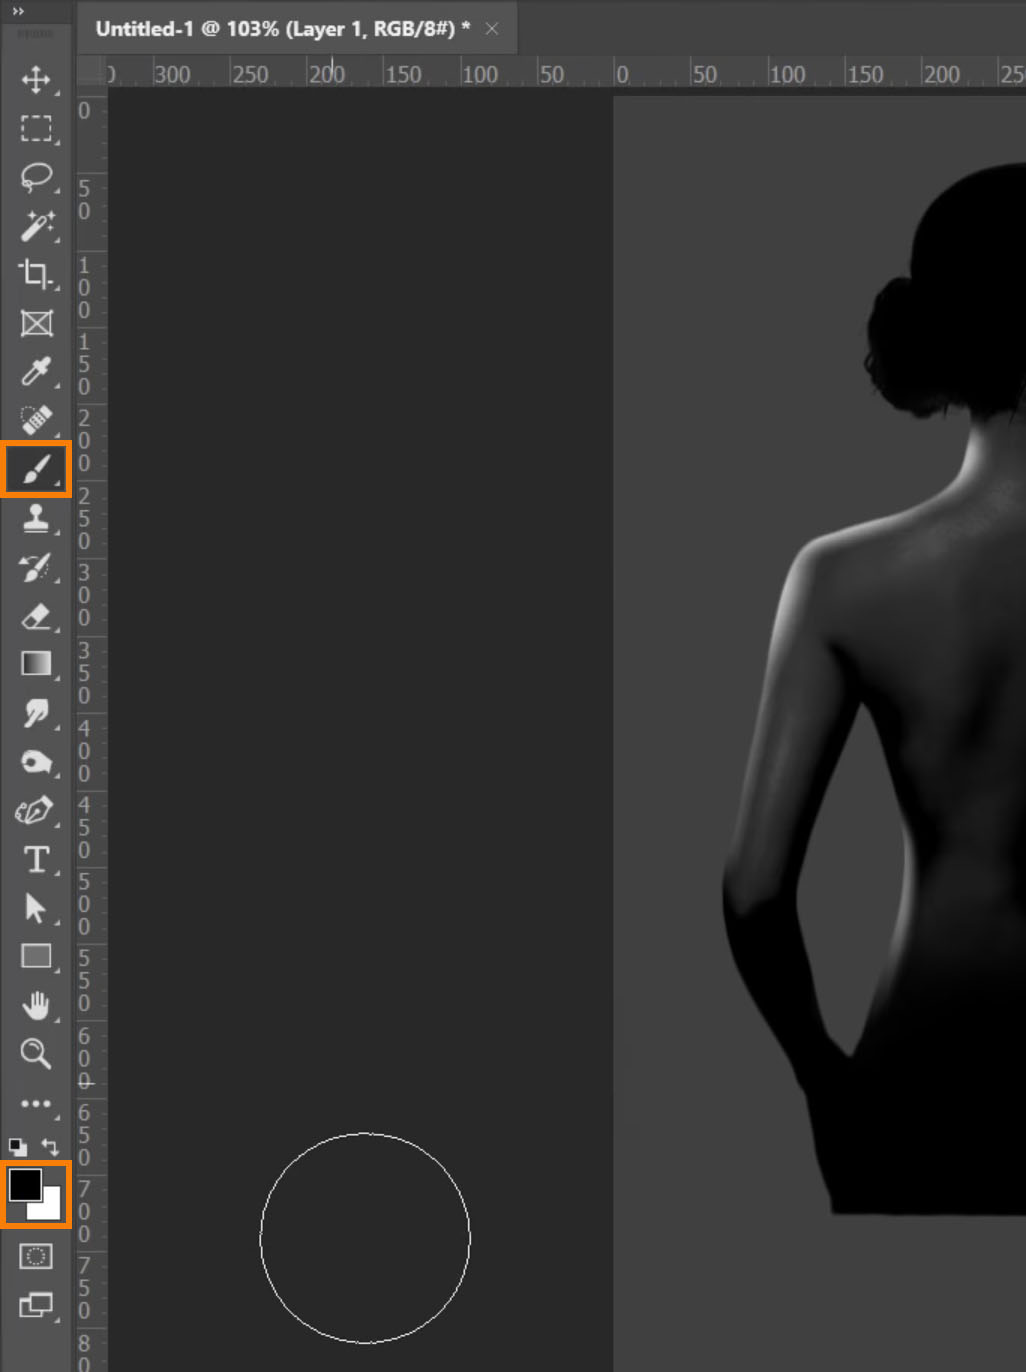 Set your Foreground color to black